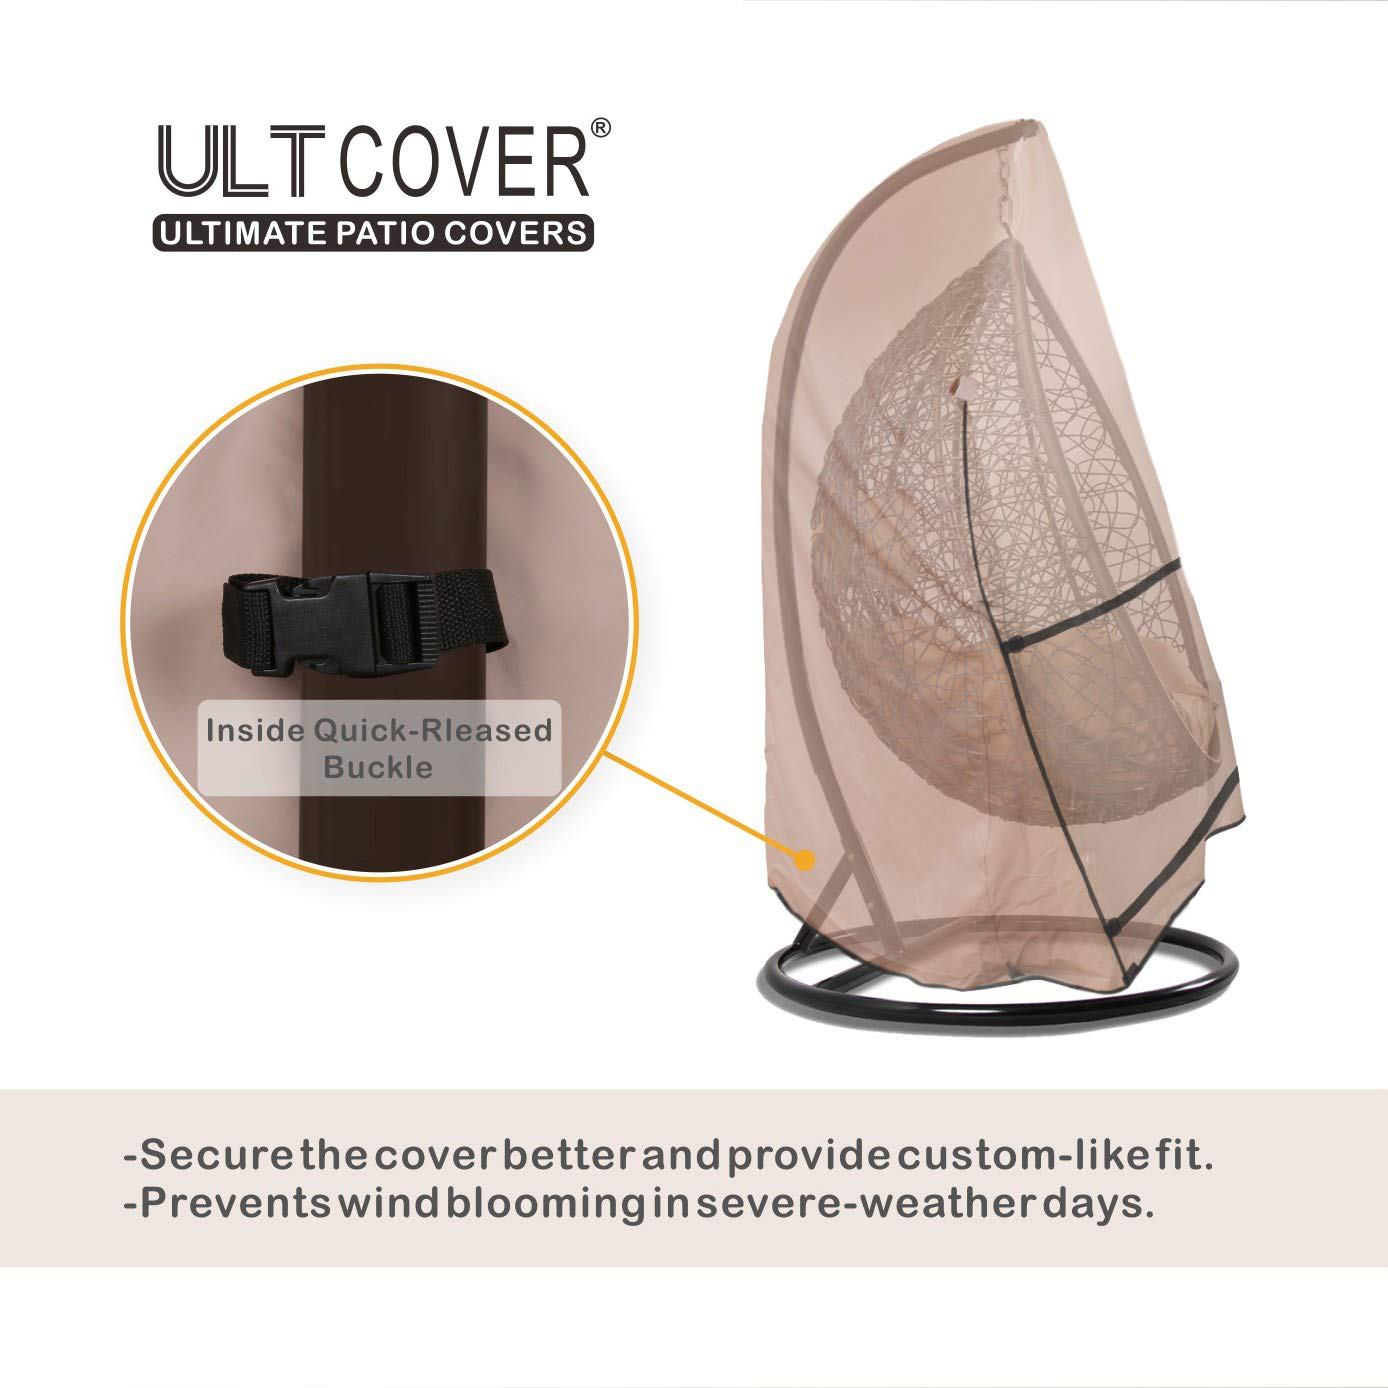 ULTCOVER Patio Hanging Egg Chair Cover - Waterproof Outdoor Single & 2 Person Swing Egg Chair with Stand Cover 56''(D) x 68''(H) by ULTCOVER (Image #5)